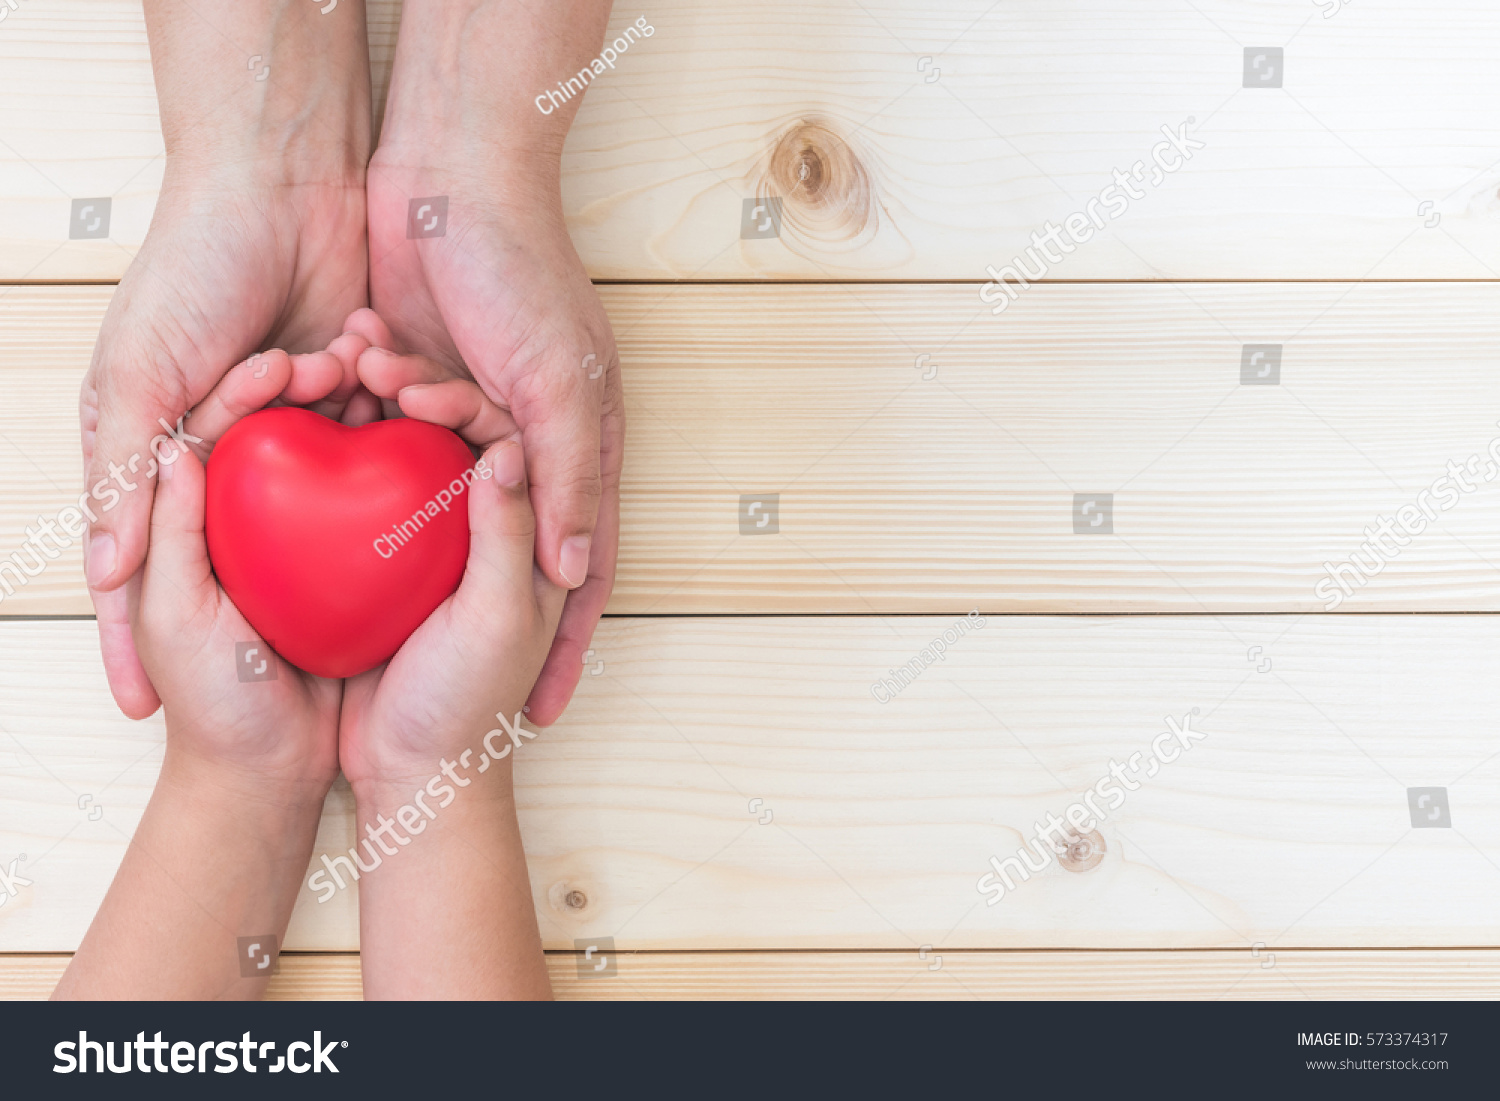 I love you Mom, Mother's Day celebration with woman holds young kid's hands supporting red heart, and charity donation for nursing children concept  #573374317